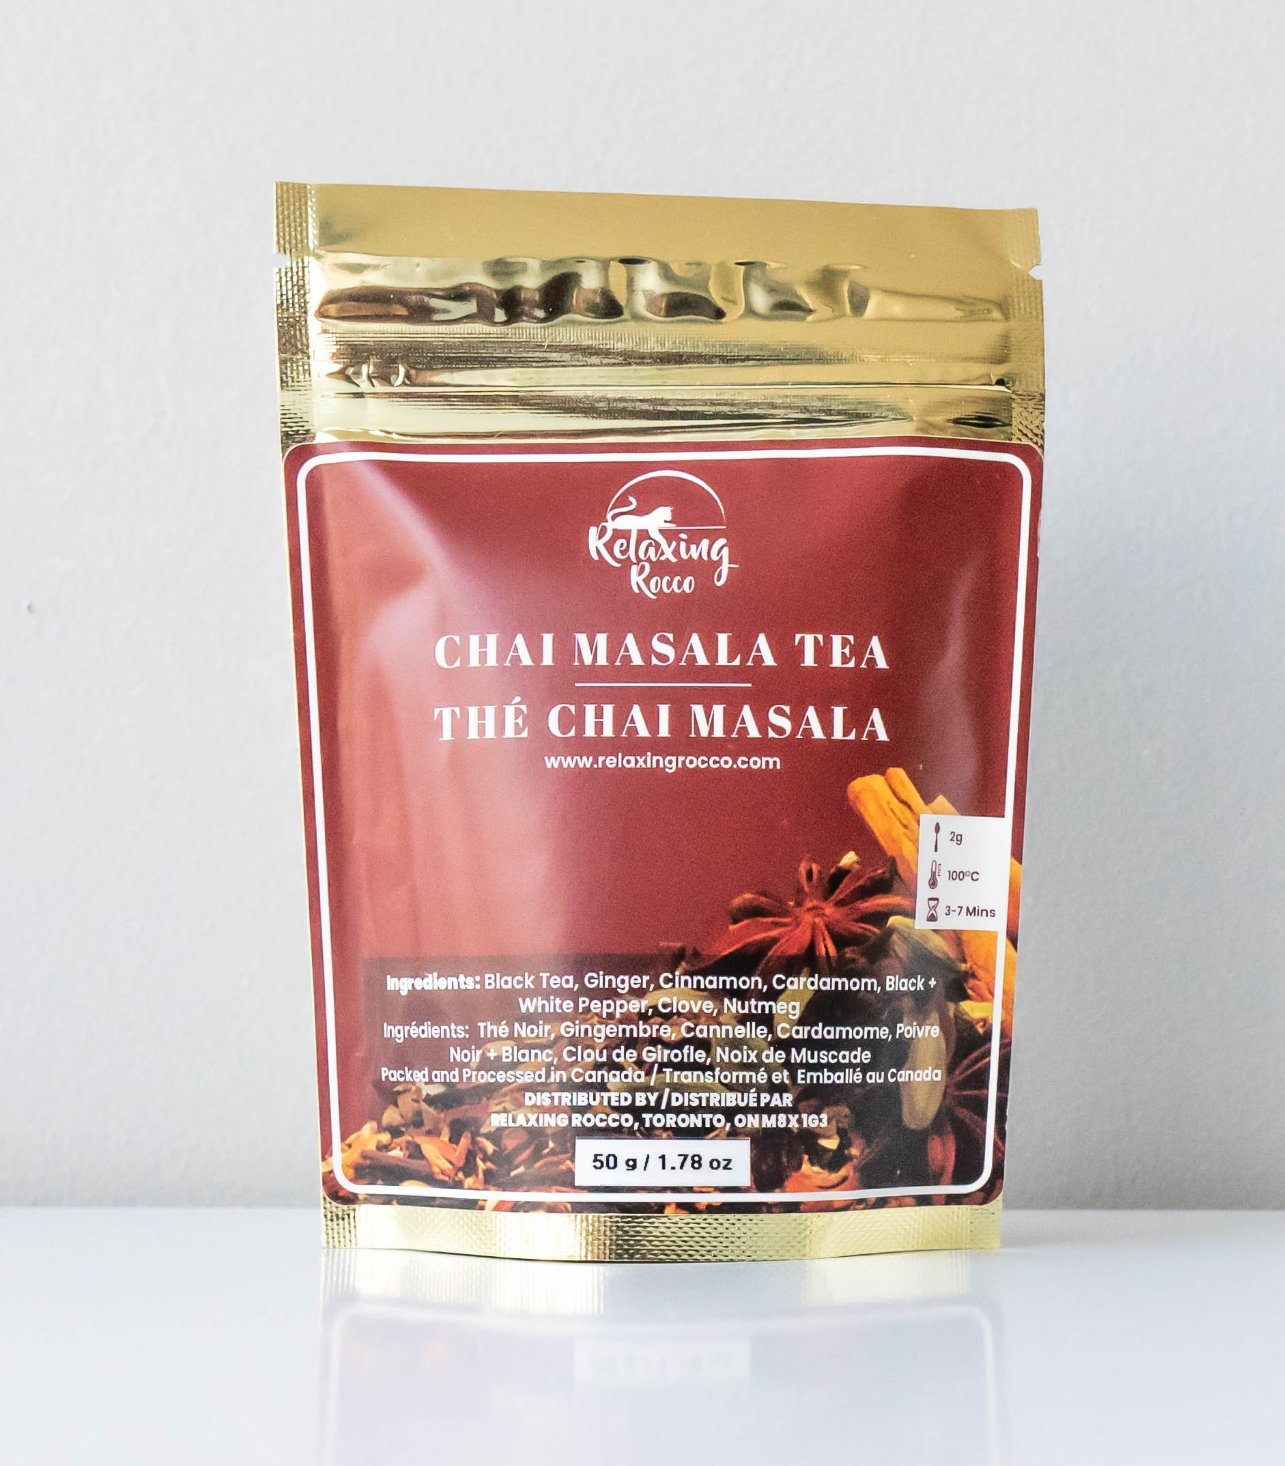 Package of Relaxing Rocco Chai Masala